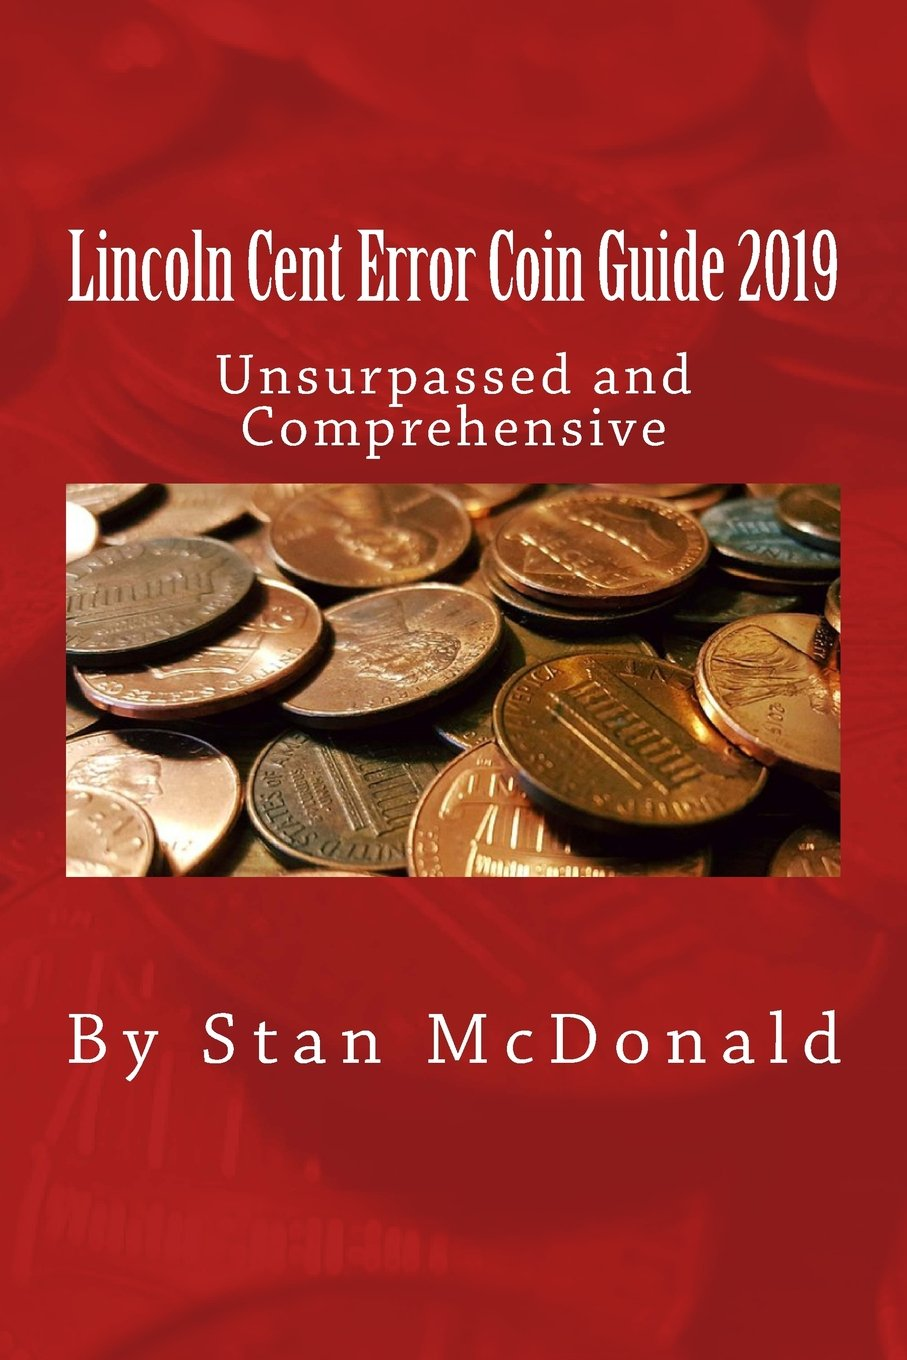 Lincoln Cent Error Coin Guide 2019: Stan McDonald